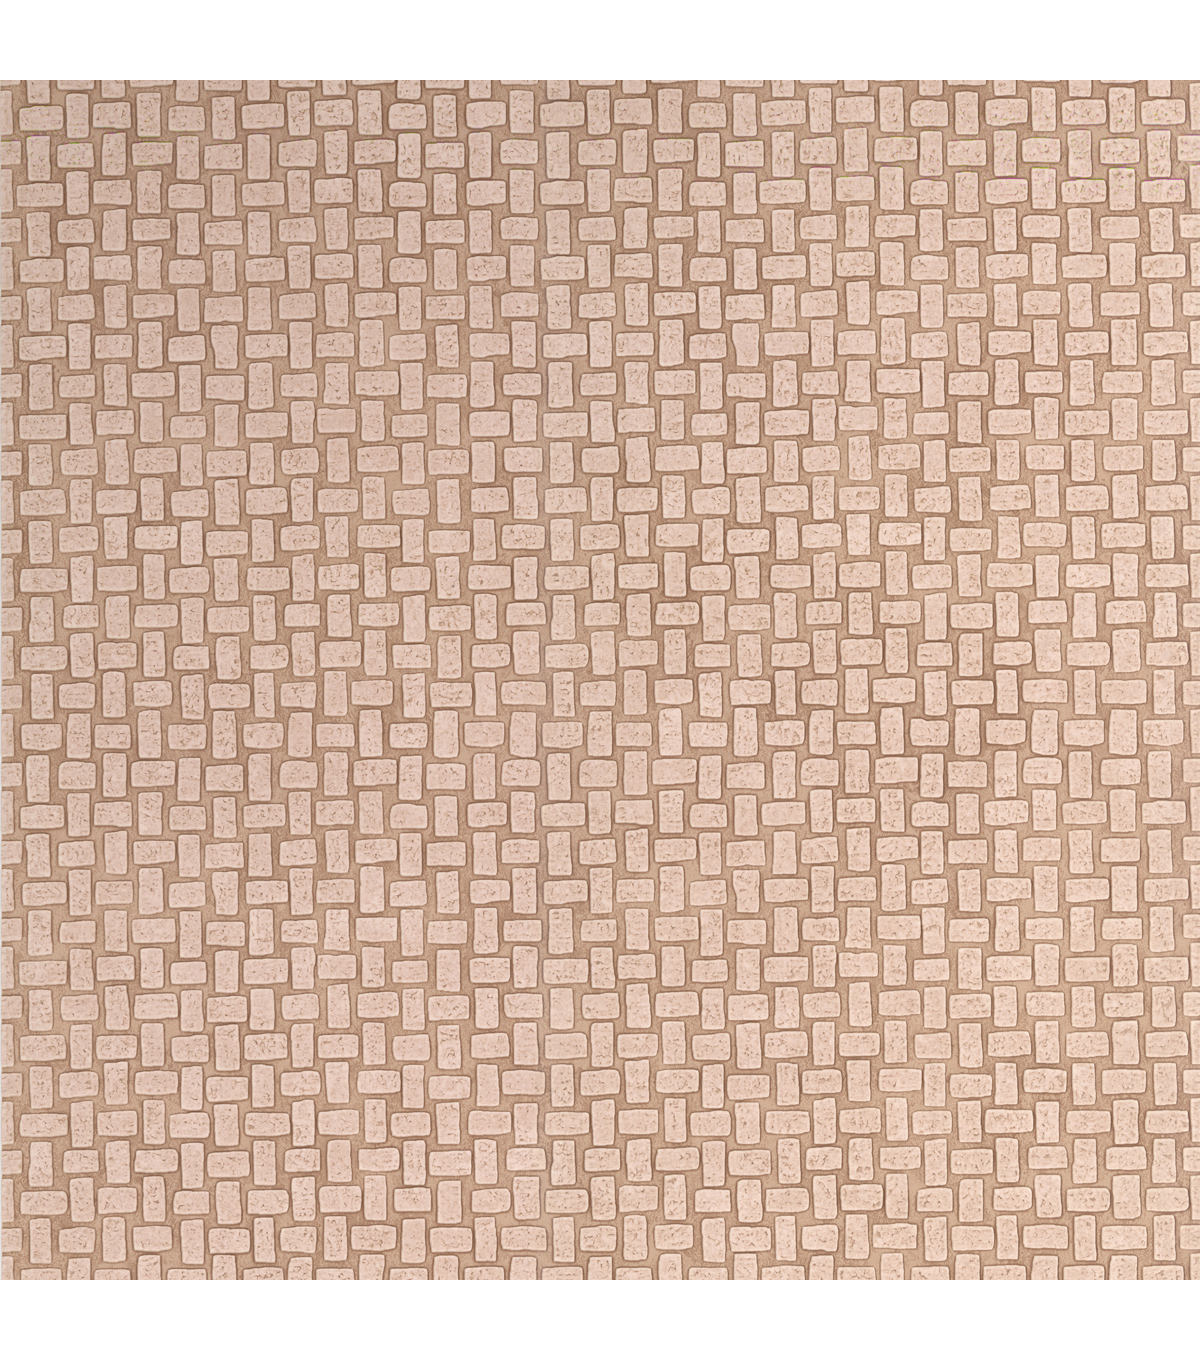 Crete Cream Small Tile Wallpaper Sample